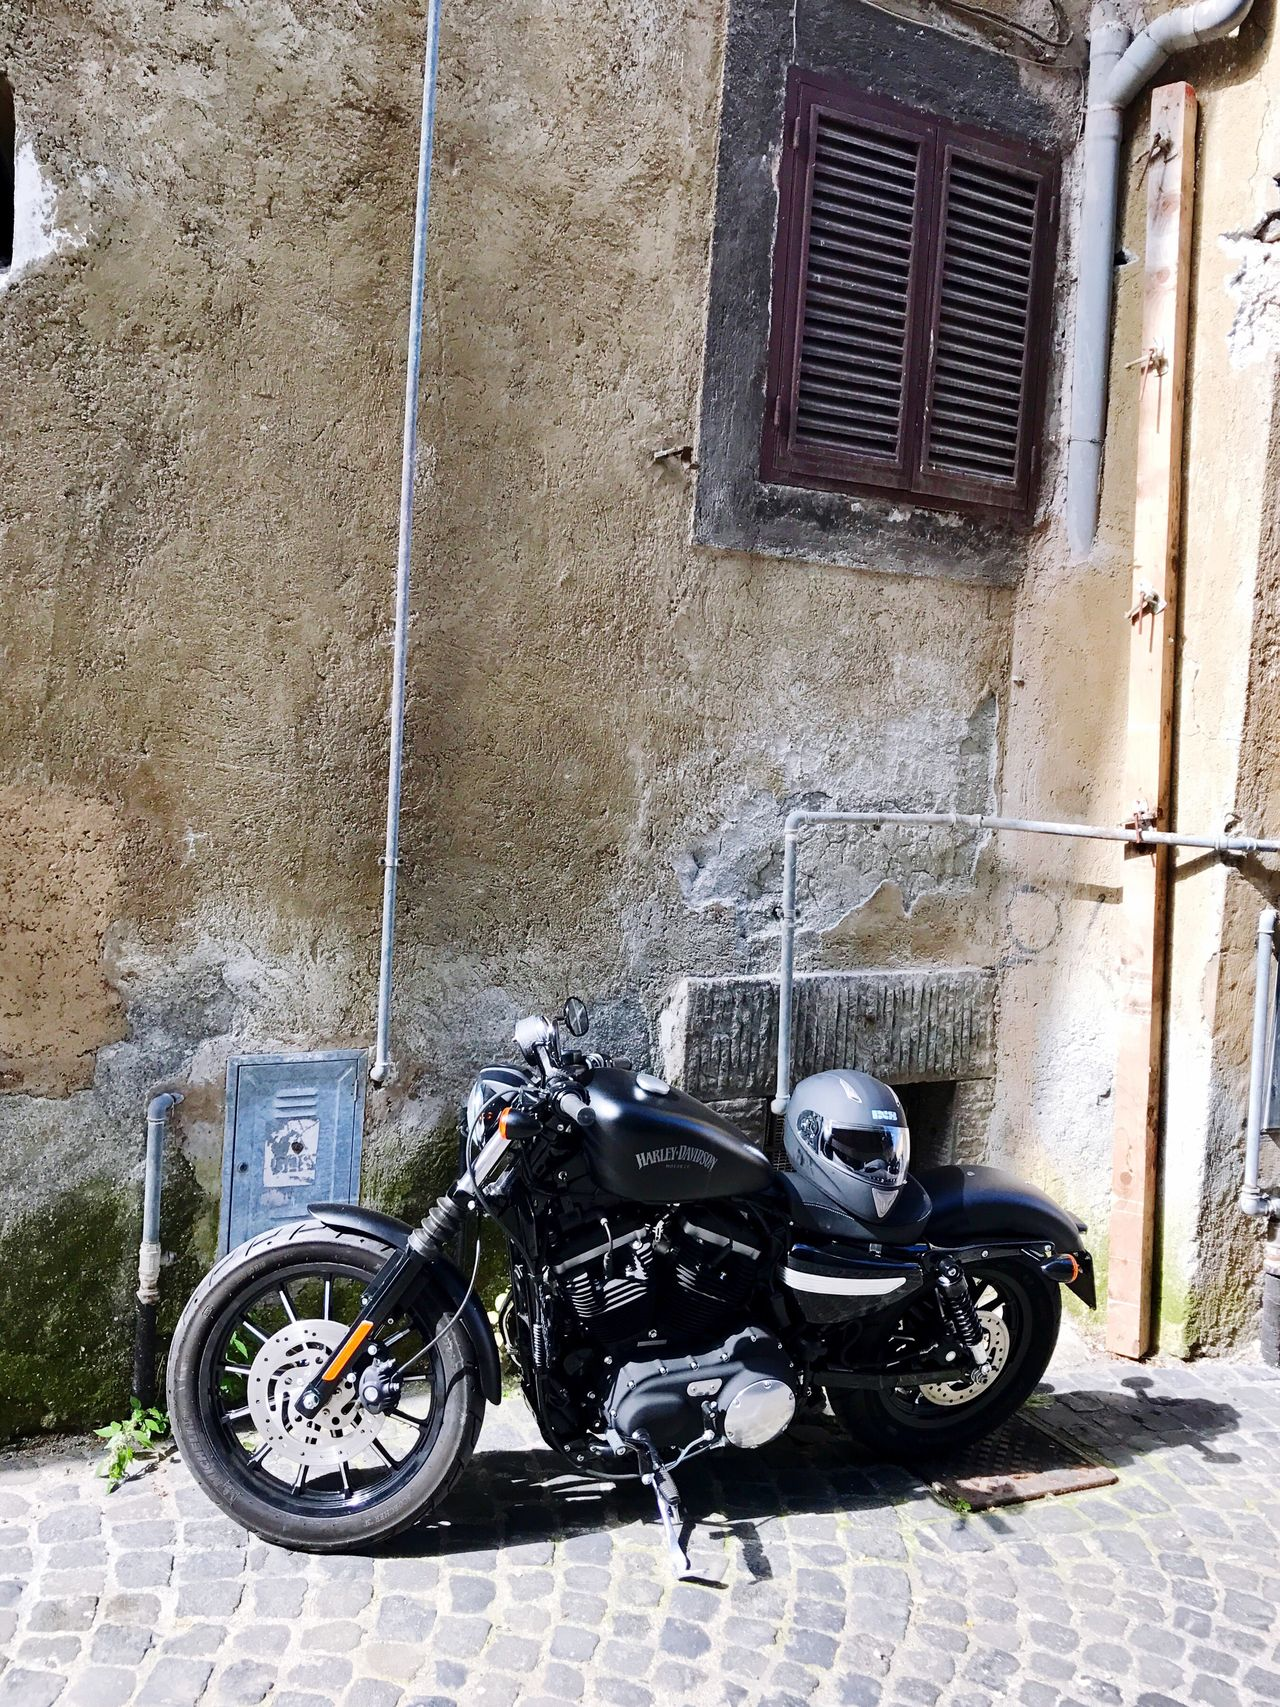 Motorcycle Under the Window Built Structure Streetwiew Wheniwasanapple Régi Motoros Harleydavidson Harley Davidson HarleyDavidsonMotorcycles Sportster Harley4life Harley Davidson Sportster Stationary Transportation Architecture Day No People Outdoors